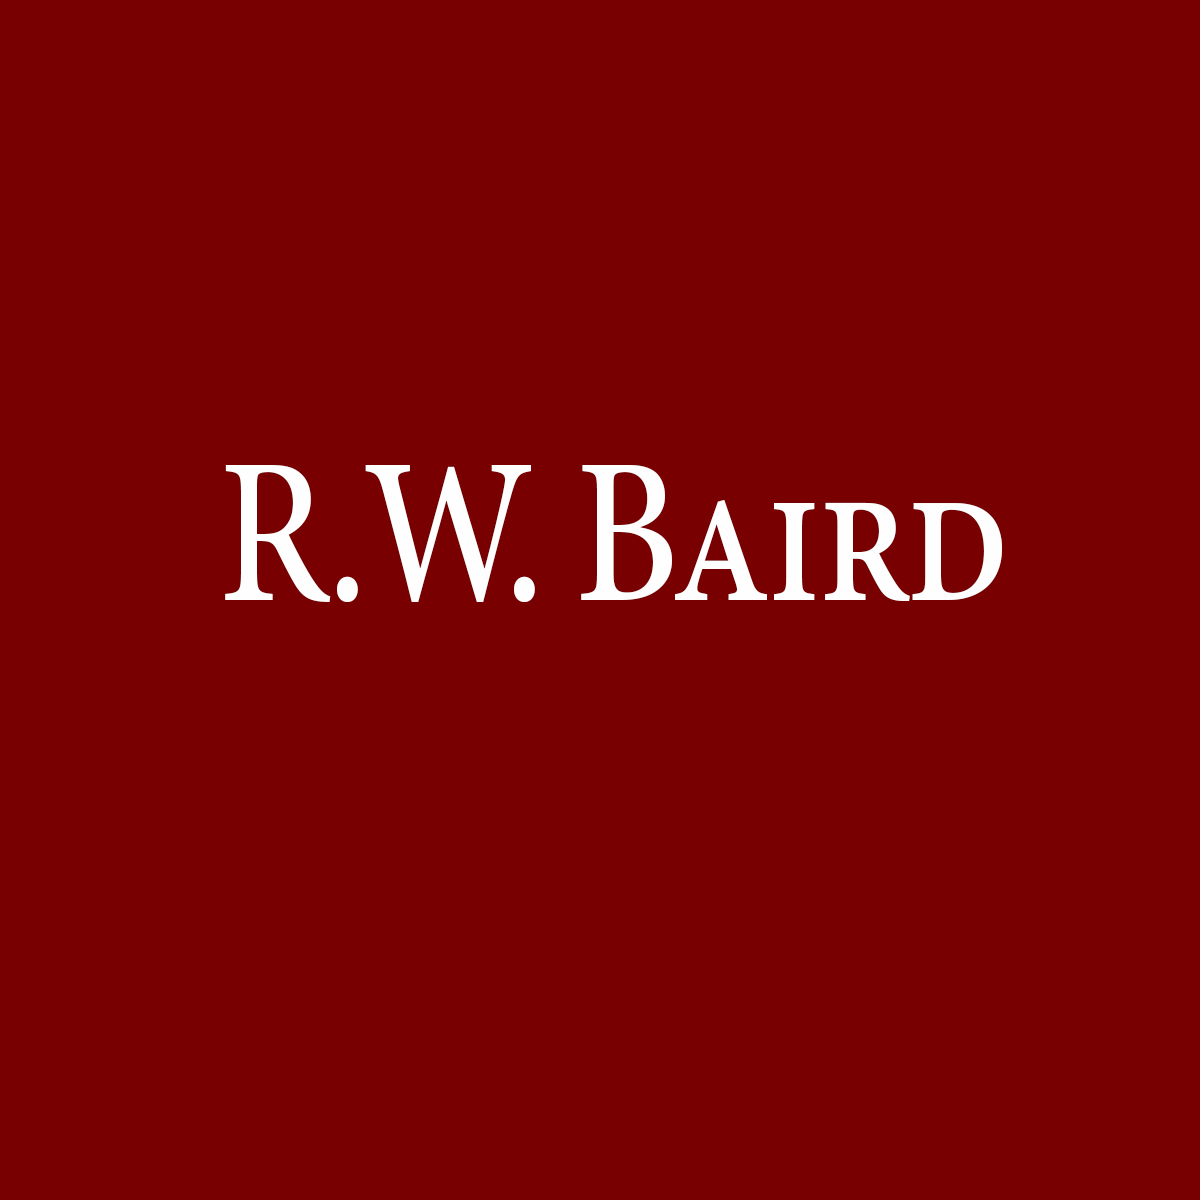 R.W.Baird.png